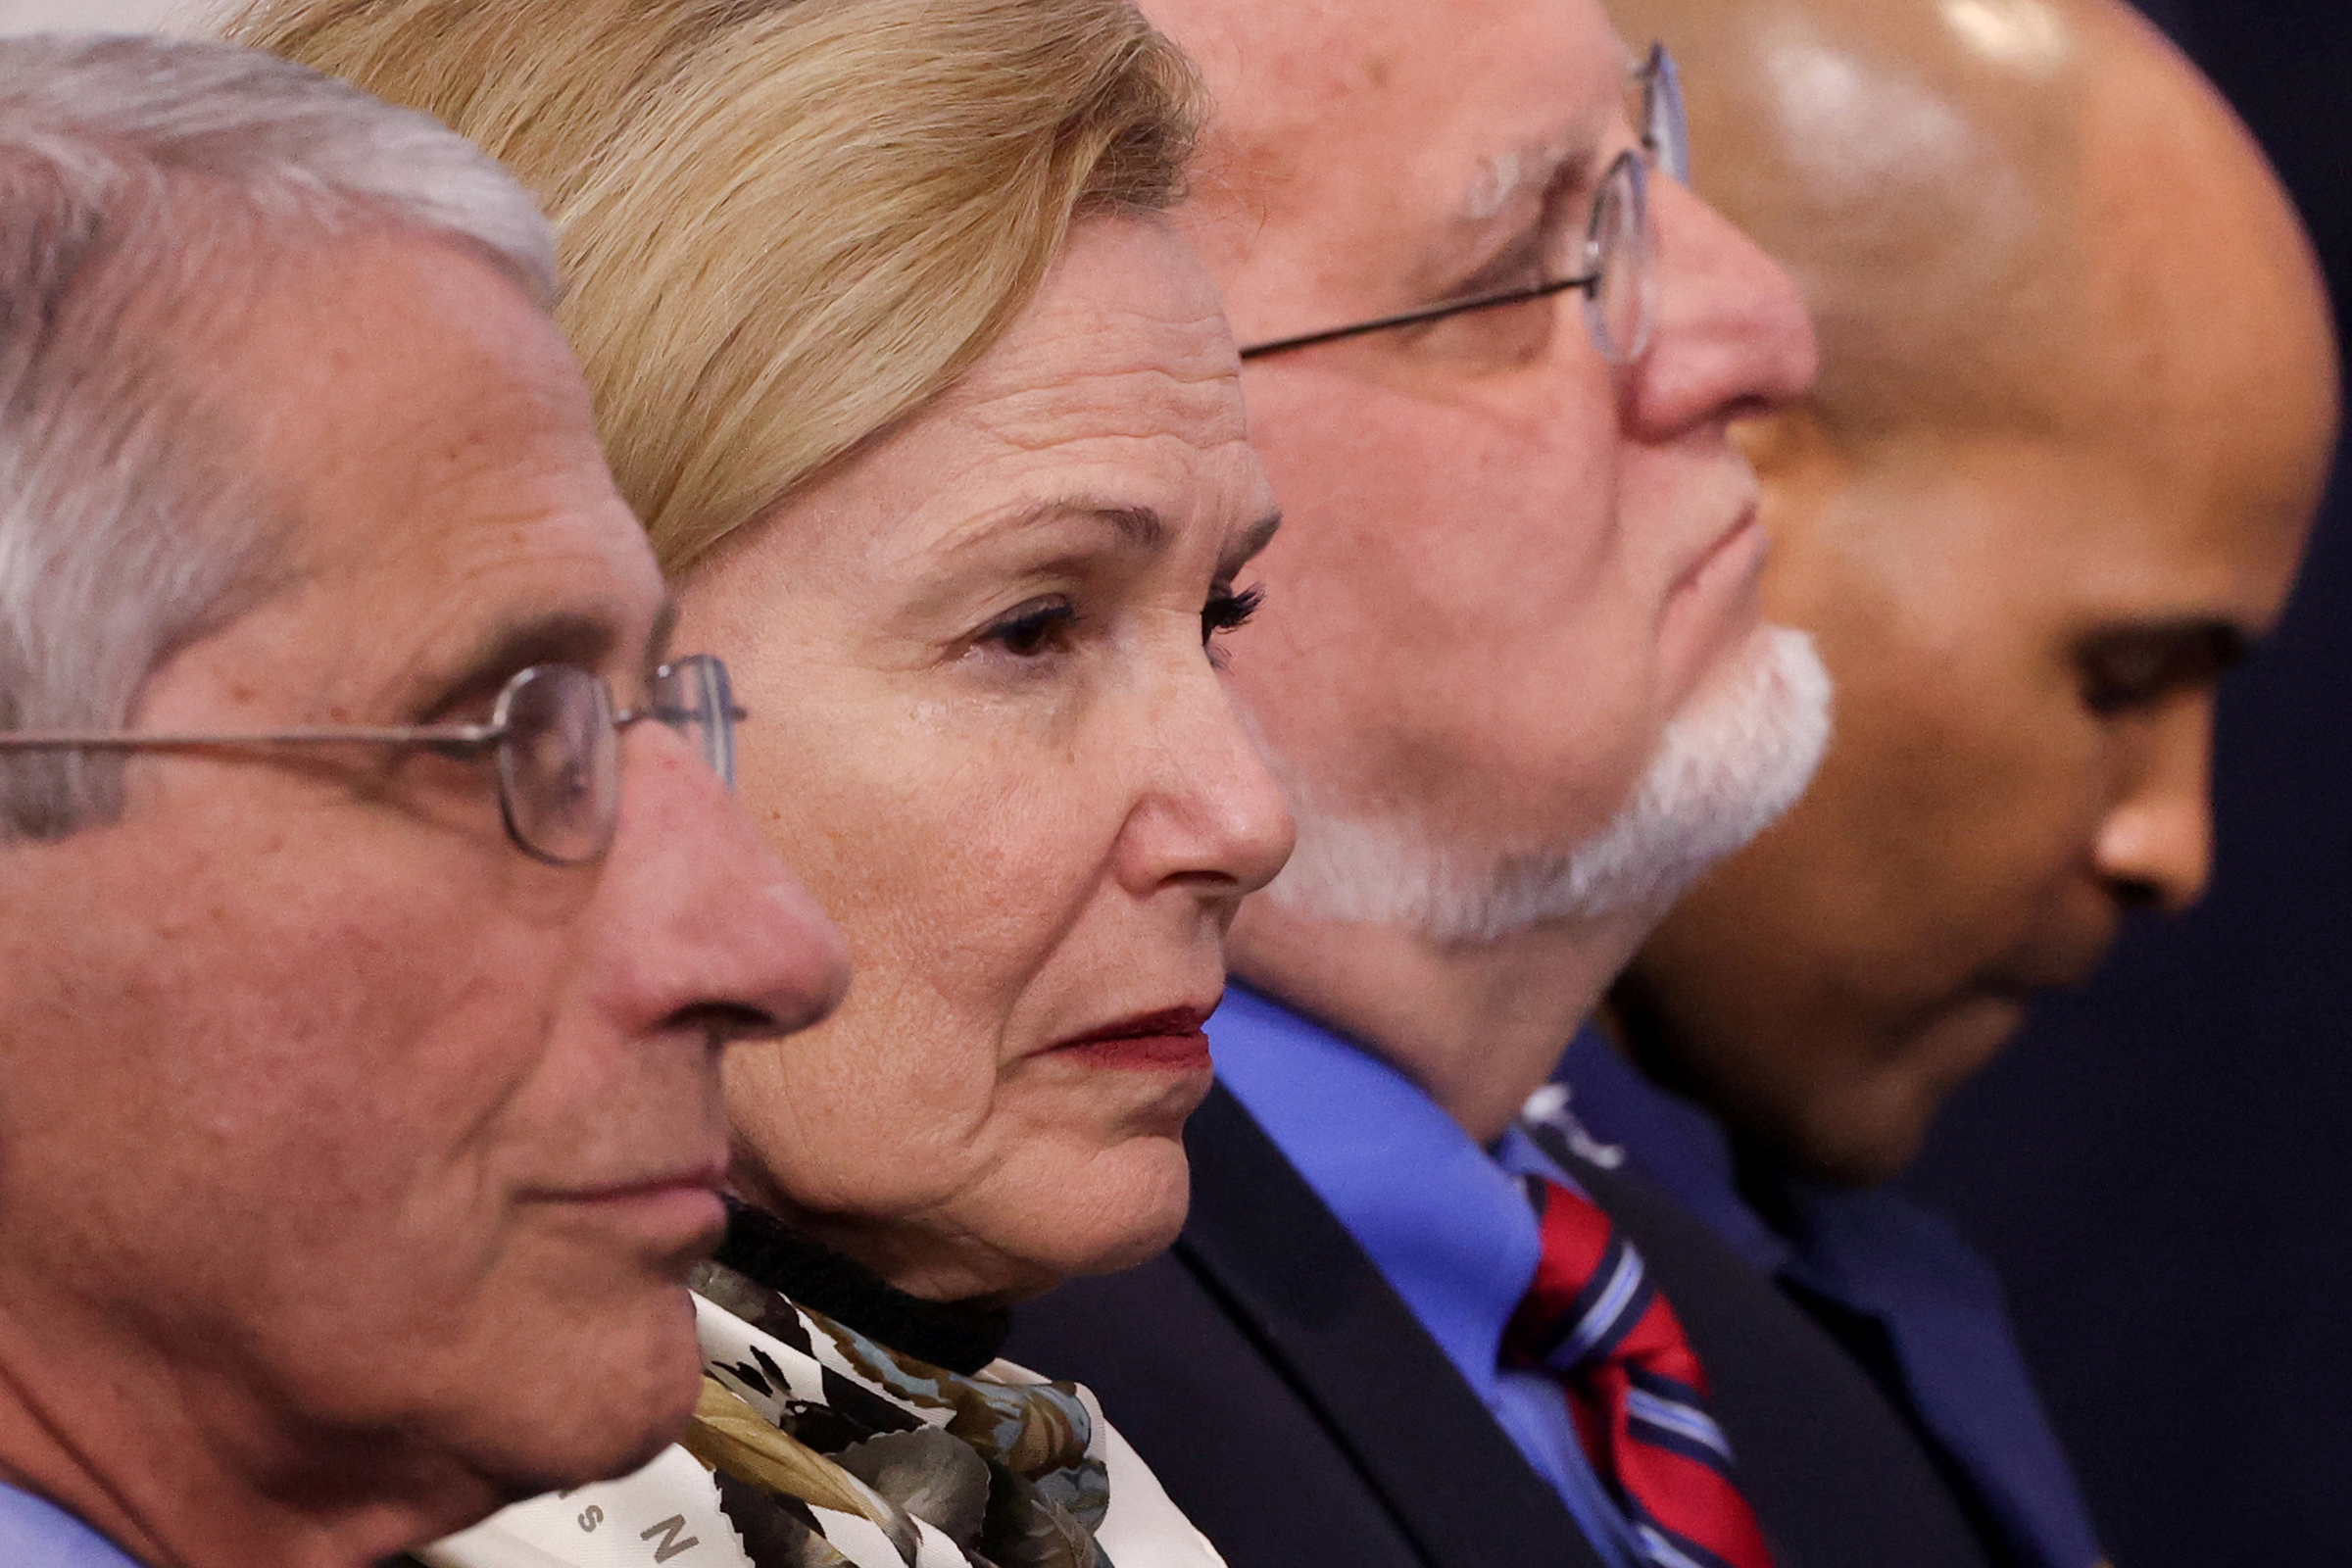 Members of the White House coronavirus task force—Dr. Anthony Fauci, Dr. Deborah Birx, CDC Director Robert Redfield and U.S. Surgeon-General Jerome Adams—listen to President Trump during a daily briefing at the White House in Washington, D.C., on April 22, 2020.